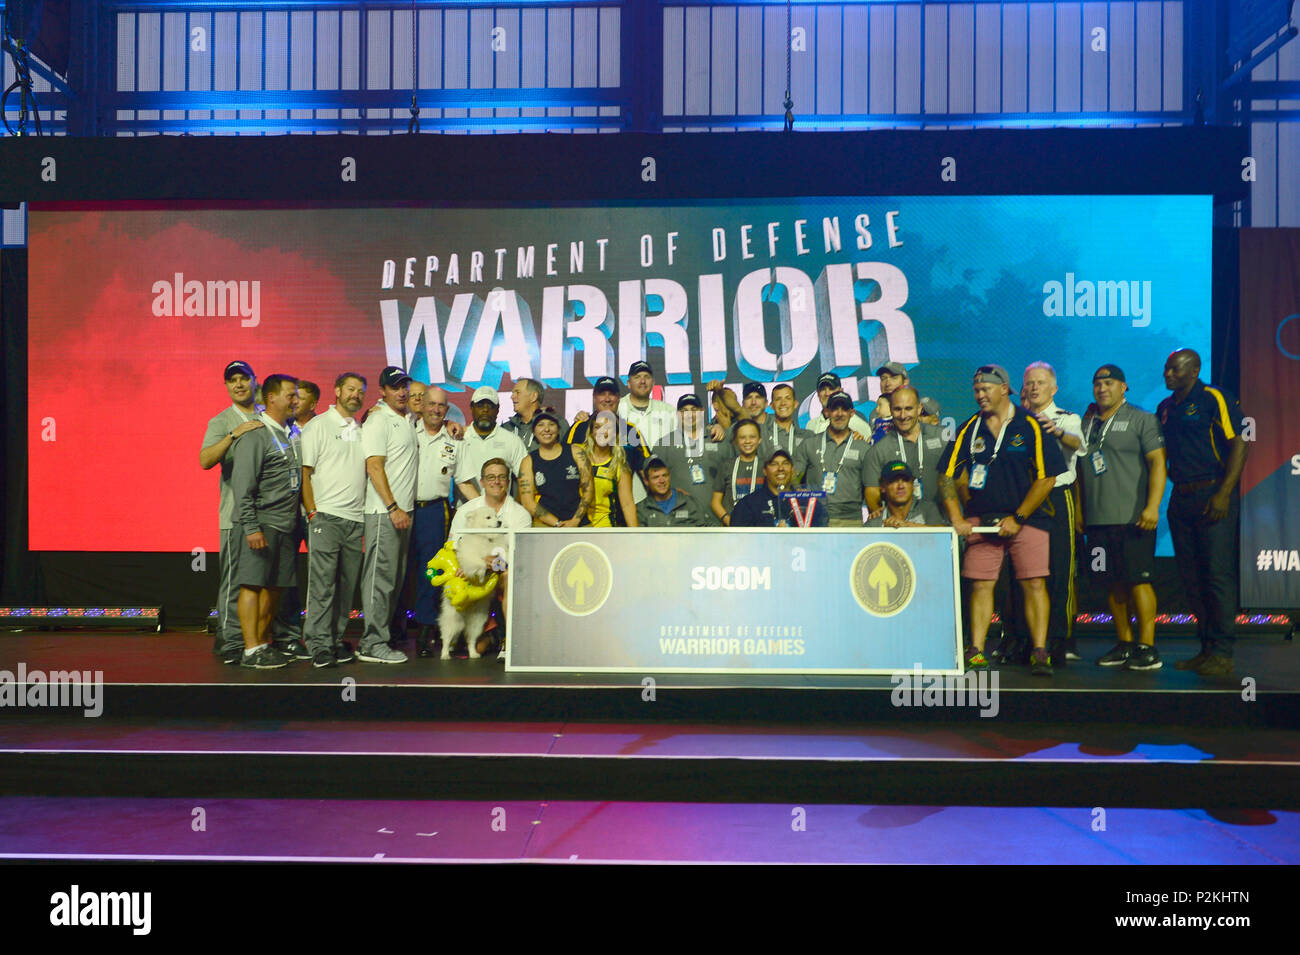 Team SOCOM celebrates on stage during the 2018 Warrior Games closing ceremony held at the Air Force Academy in Colorado Springs June 9, 2018. Created in 2010, the DoD Warrior Games introduce wounded, ill and injured service members and veterans to Paralympic-style sports. Warrior Games showcases the resilient spirit of today's wounded, ill or injured service members from all branches of the military. These athletes have overcome significant physical and behavioral injuries and prove that life can continue after becoming wounded, ill or injured.  (Photo by Michael Bottoms, USSOCOM Office of Com Stock Photo